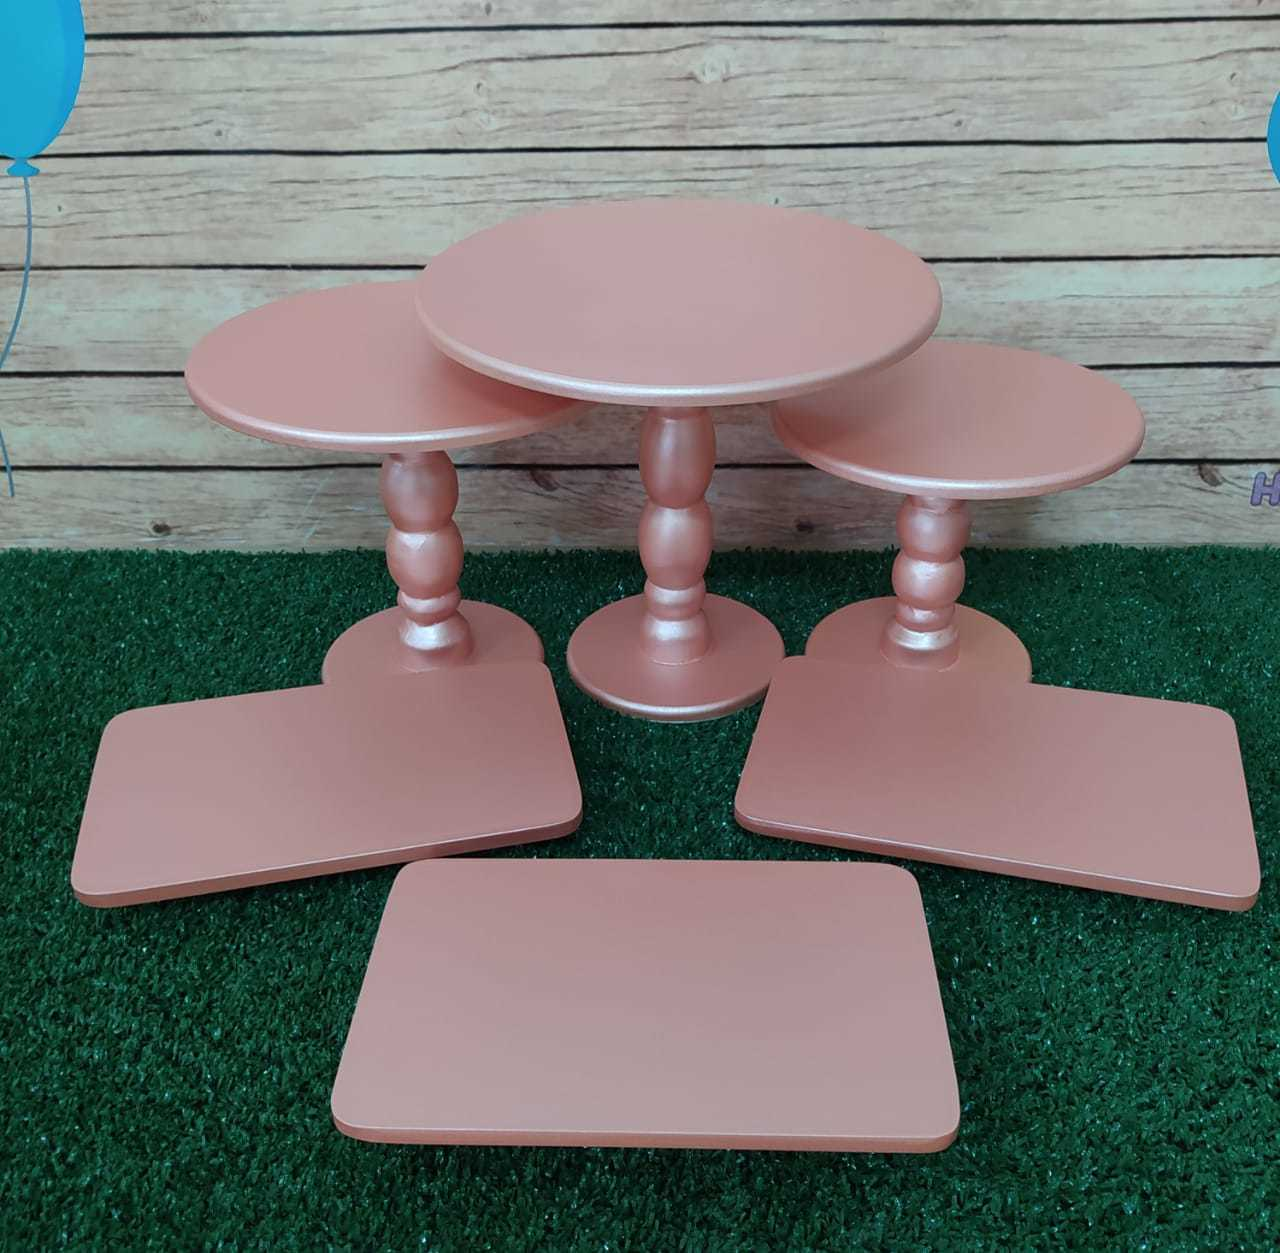 Kit Trio Boleira Bandeja Rose Gold Mdf